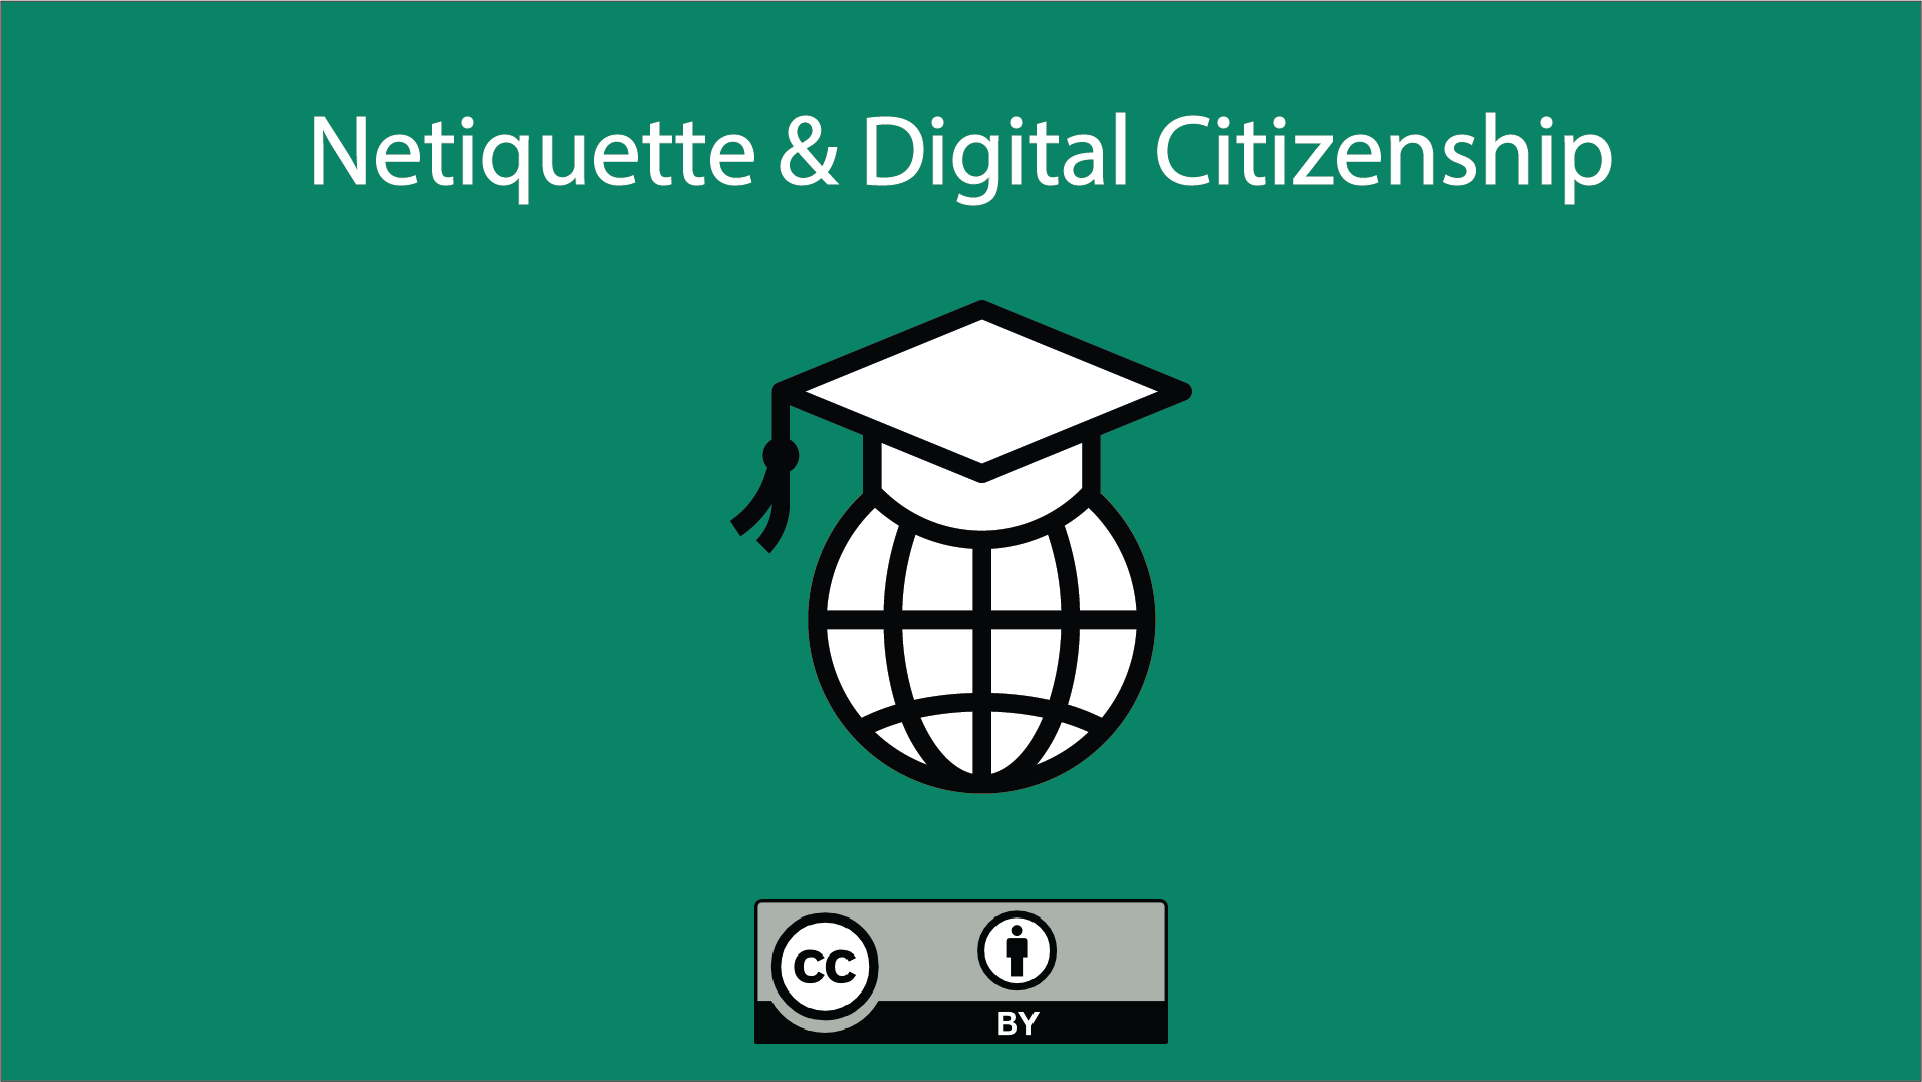 Netiquette & Digital Citizenship